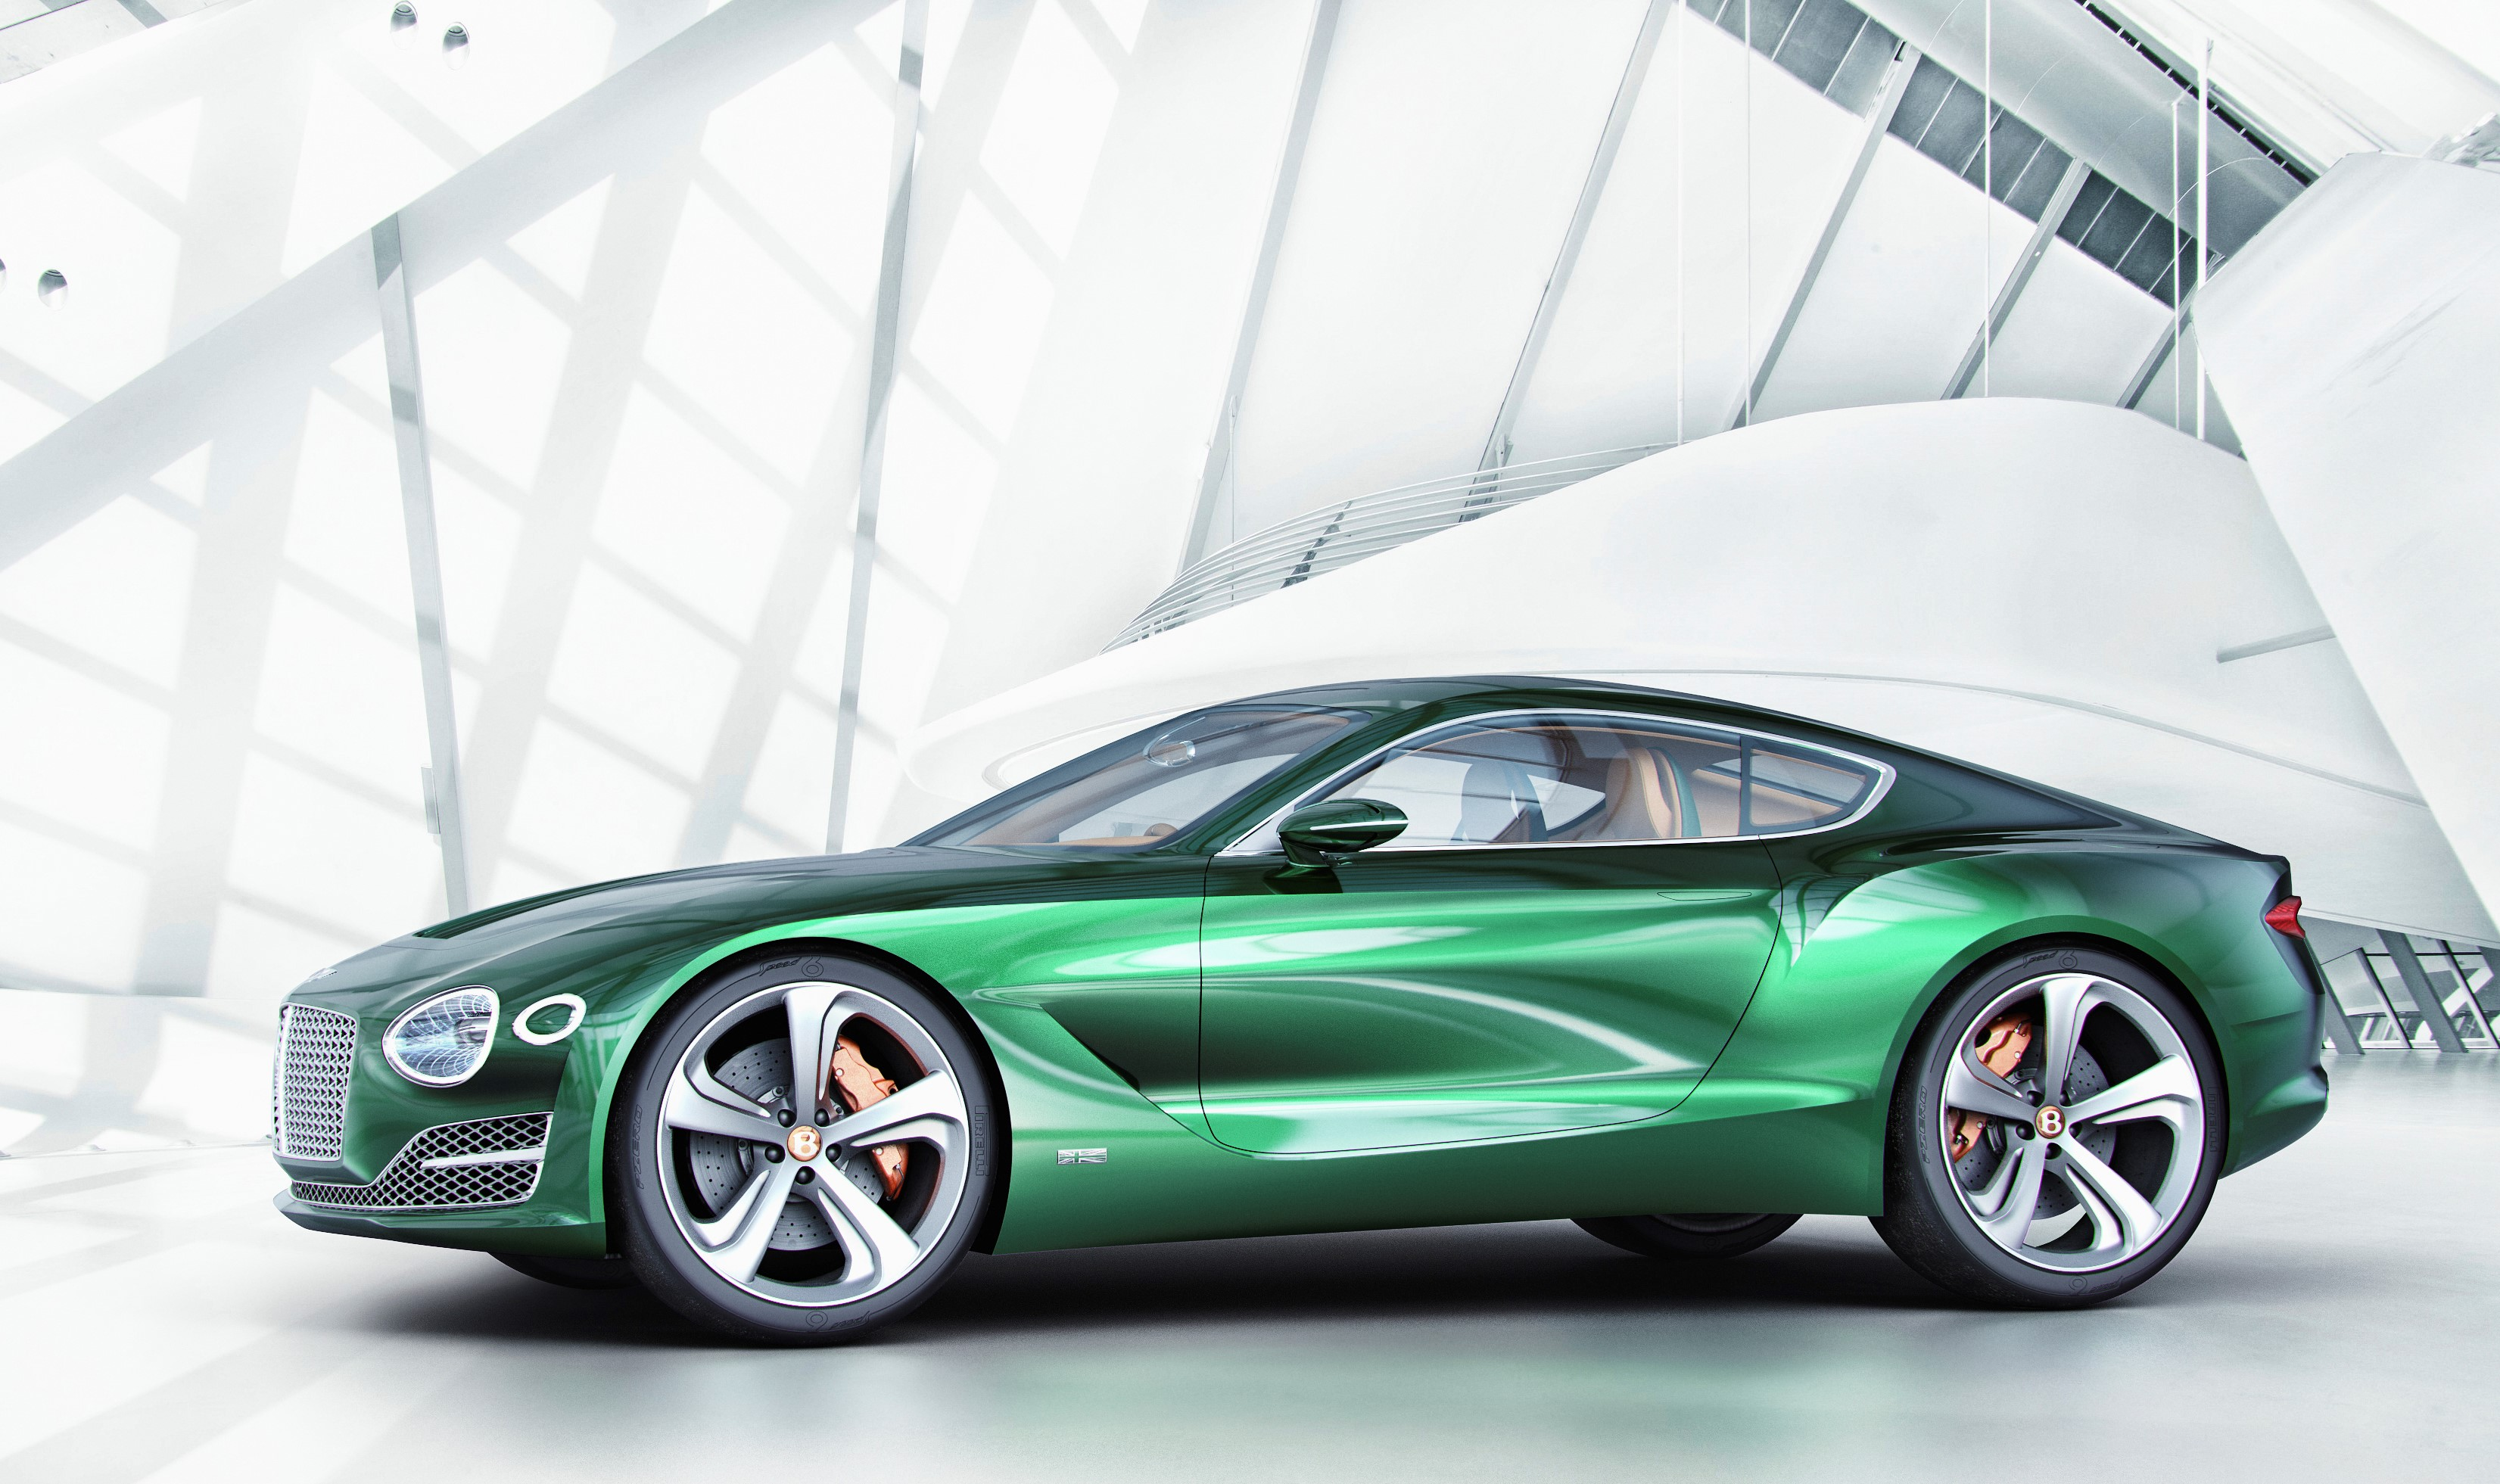 Bentley Two Seater Exp 10 Speed 6 Sportscar Concept Motrface